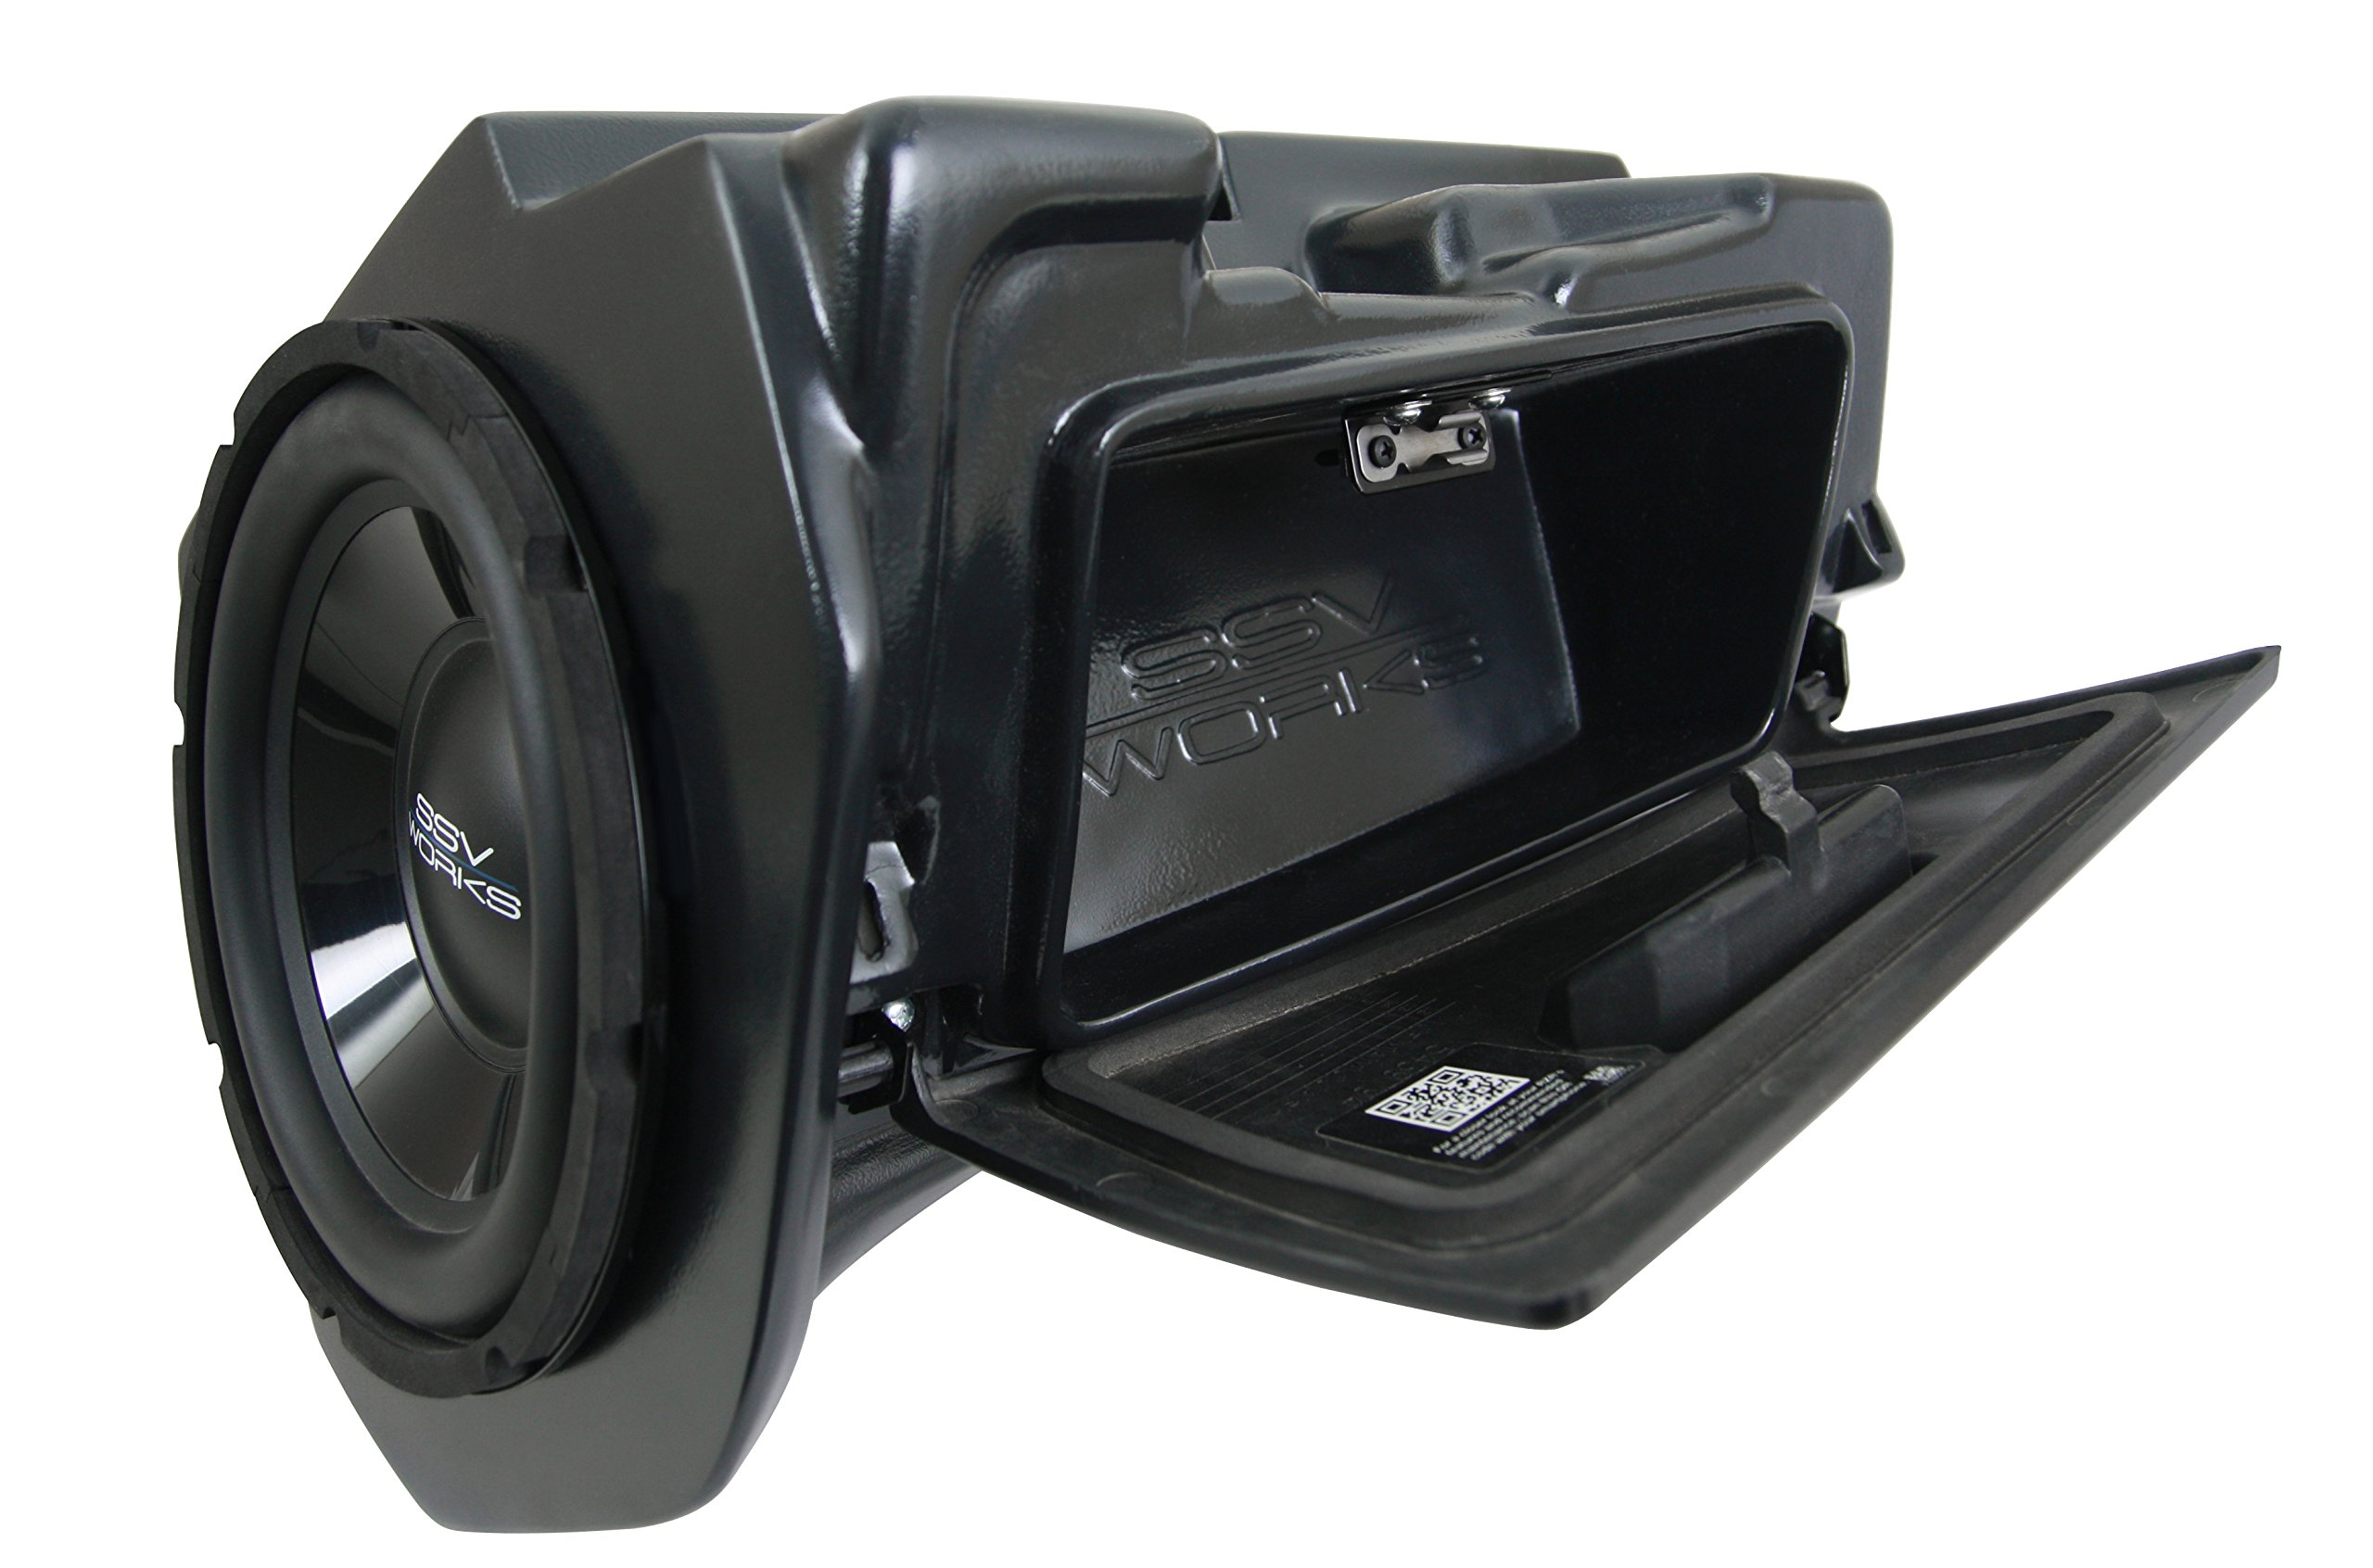 SSV Works Polaris RZR1K 2 and 4 seat and 2015 RZR900 2 and 4 seat Glove Box Replacement Subwoofer Enclosure INCLUDES 10'' Speaker